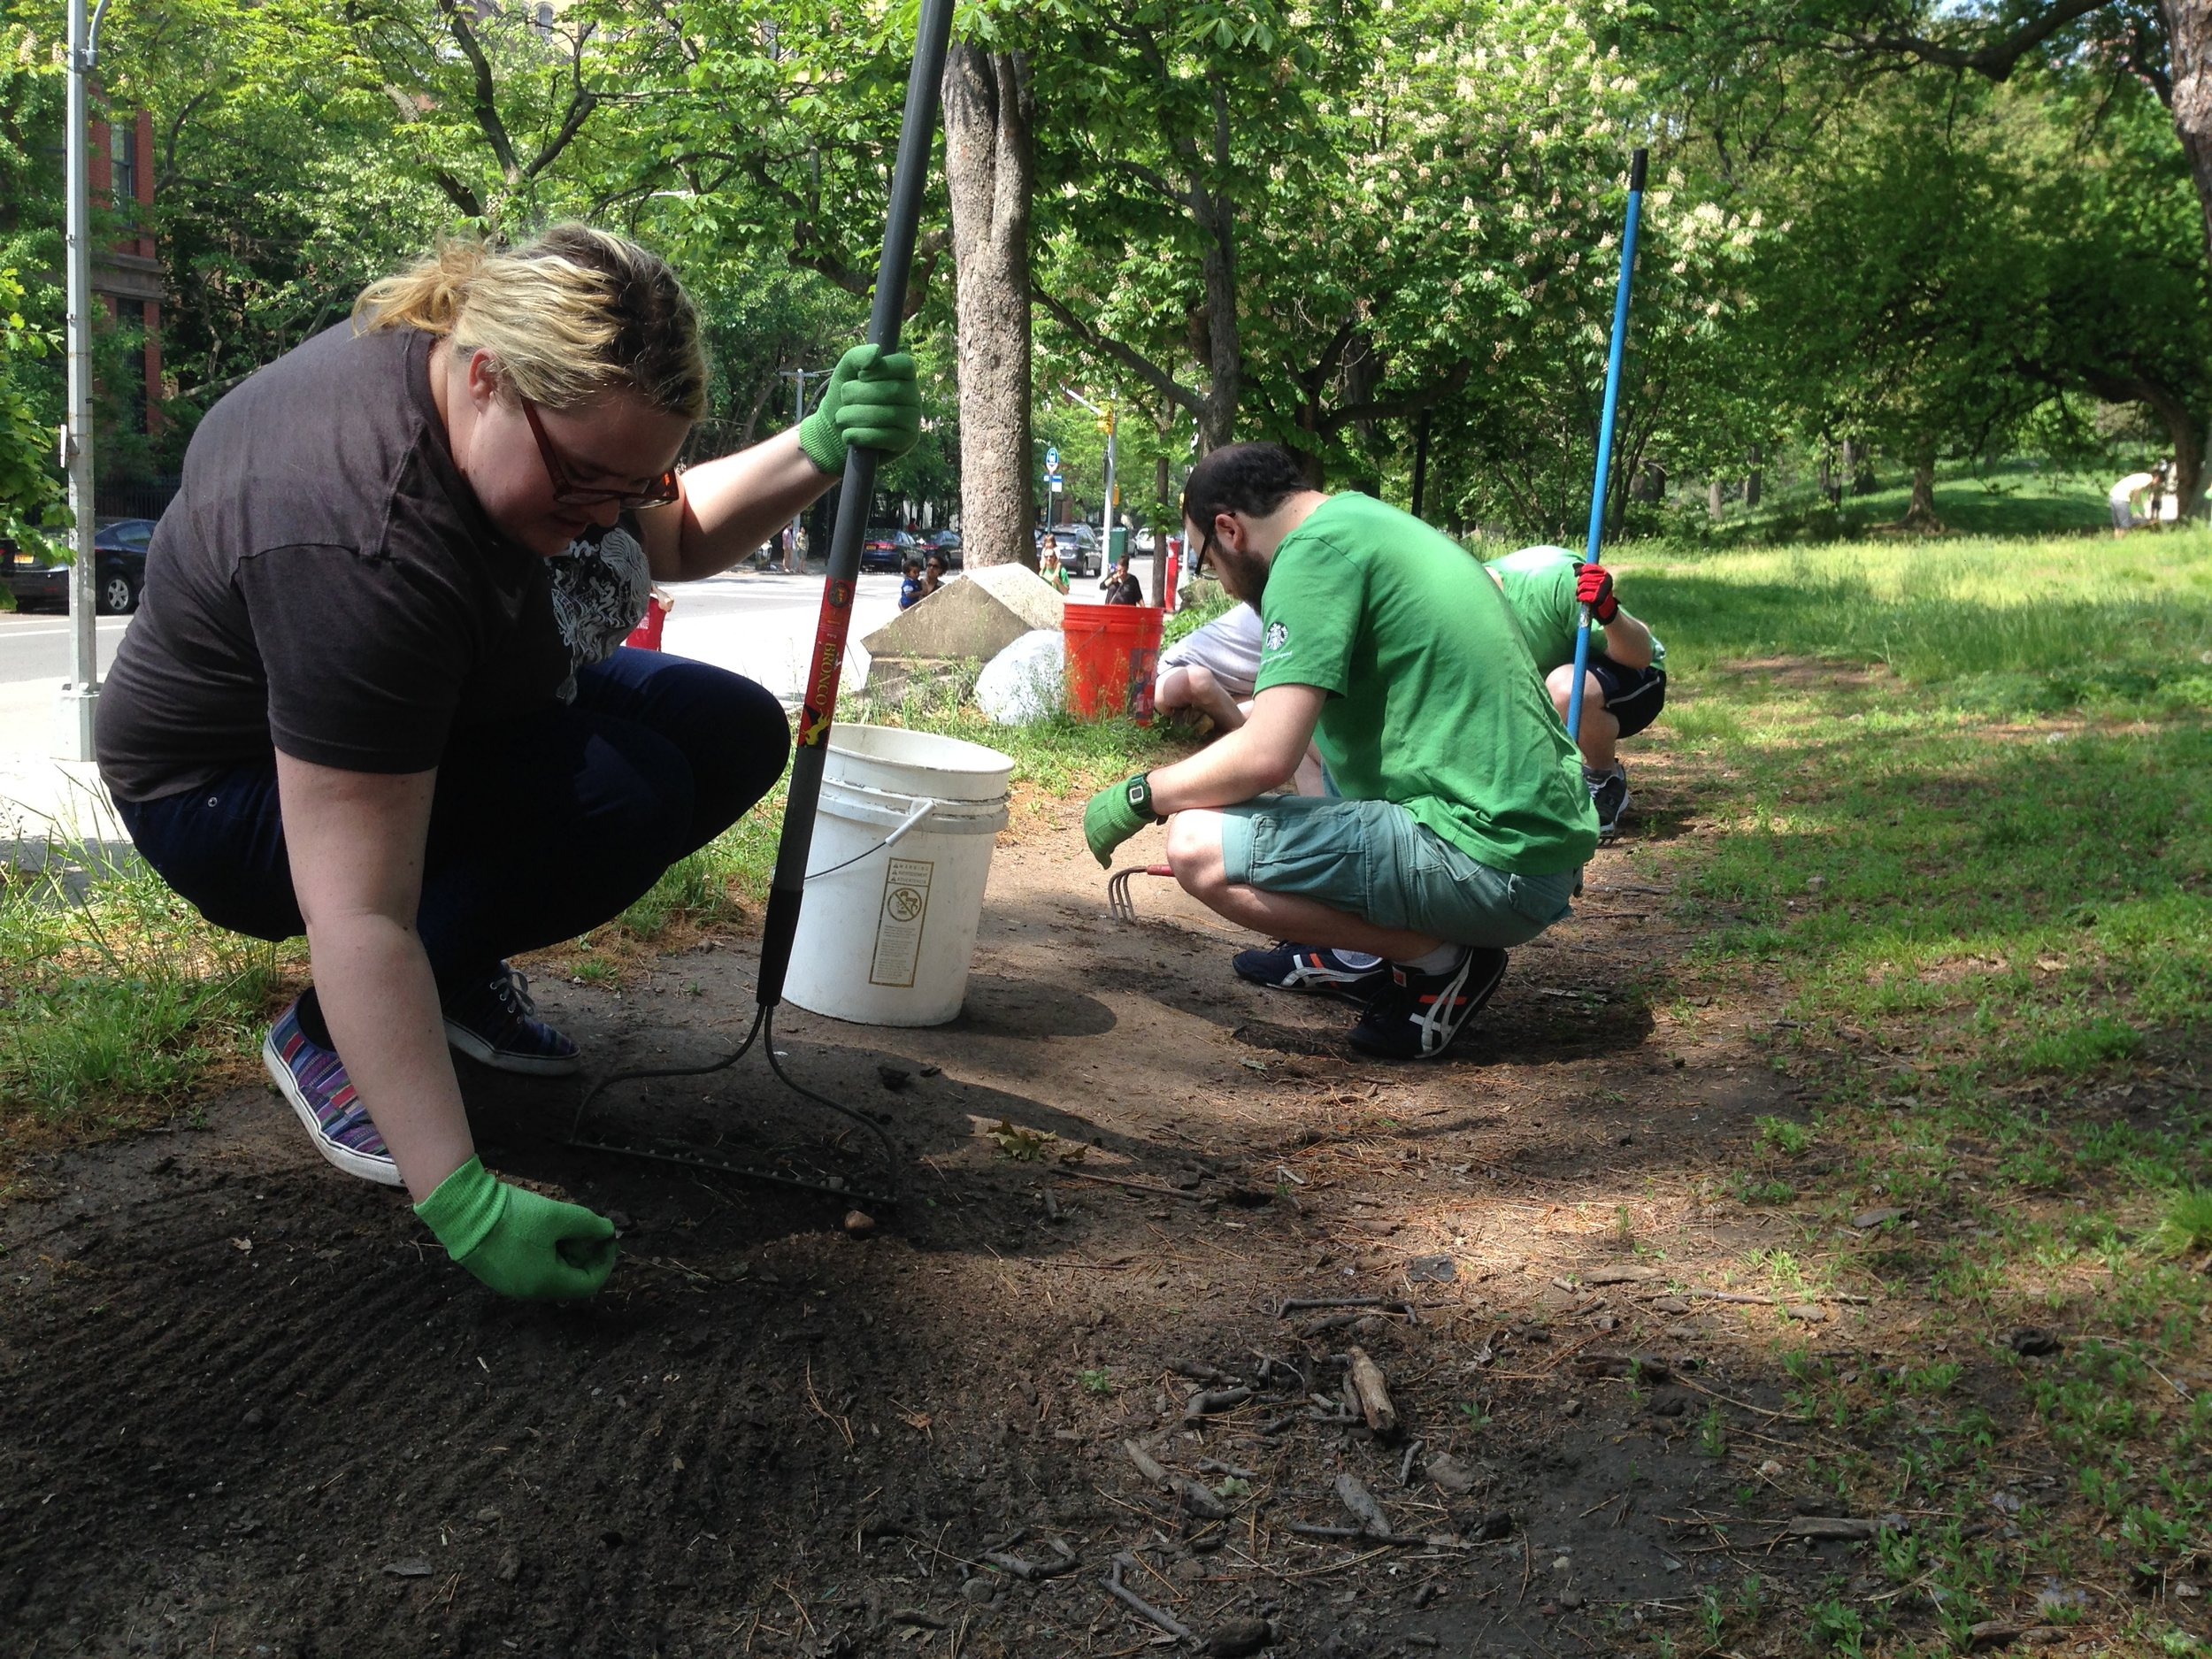 A handful of volunteers worked hard over many years to collect glass and make the park safer.